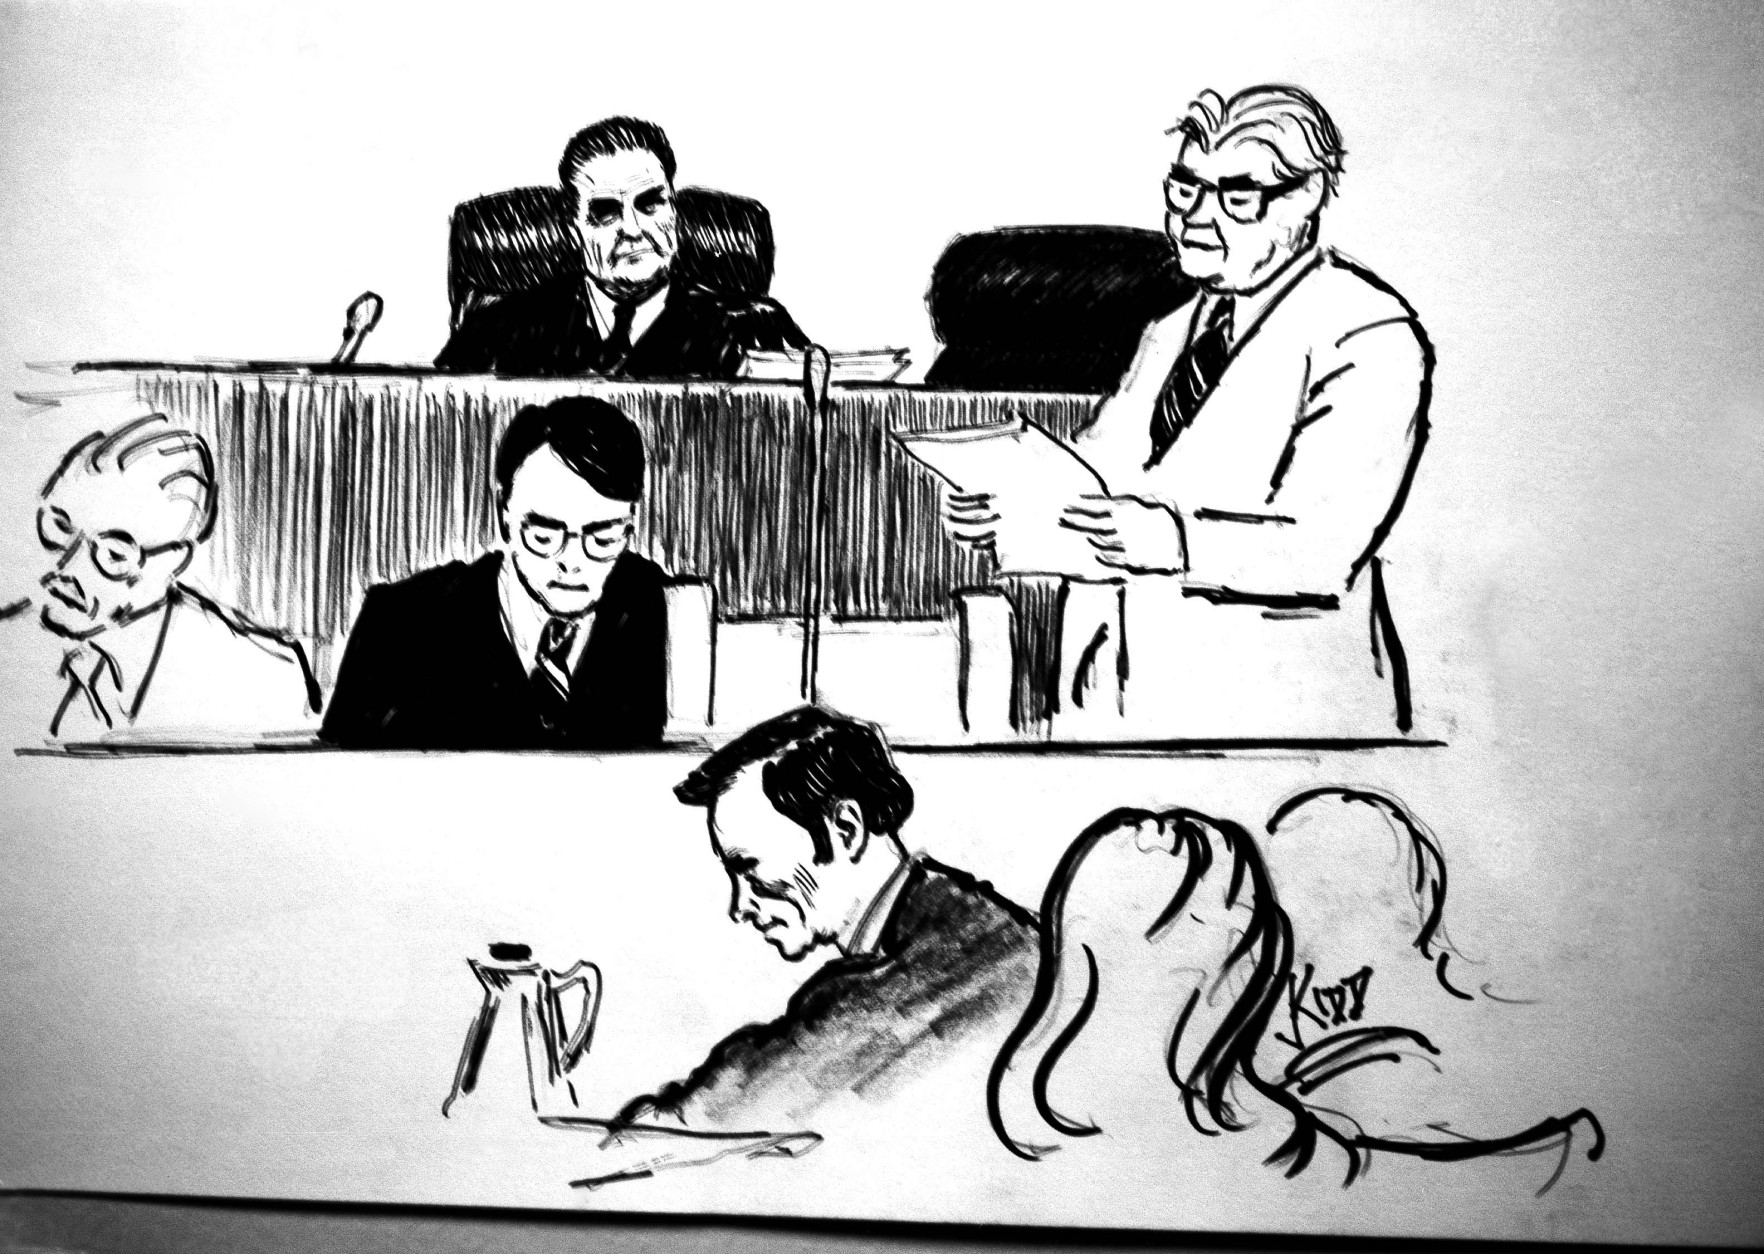 U.S. District Judge John Sirica, upper center, presides as court clerk James Capitanio, standing right, reads the jury's verdict in the Watergate cover-up trial in Washington  Wednesday, Jan. 1, 1975, in a drawing by Steven Kidd for the Associated Press. At lower center is James Neal, the special prosecutor. (AP Photo)